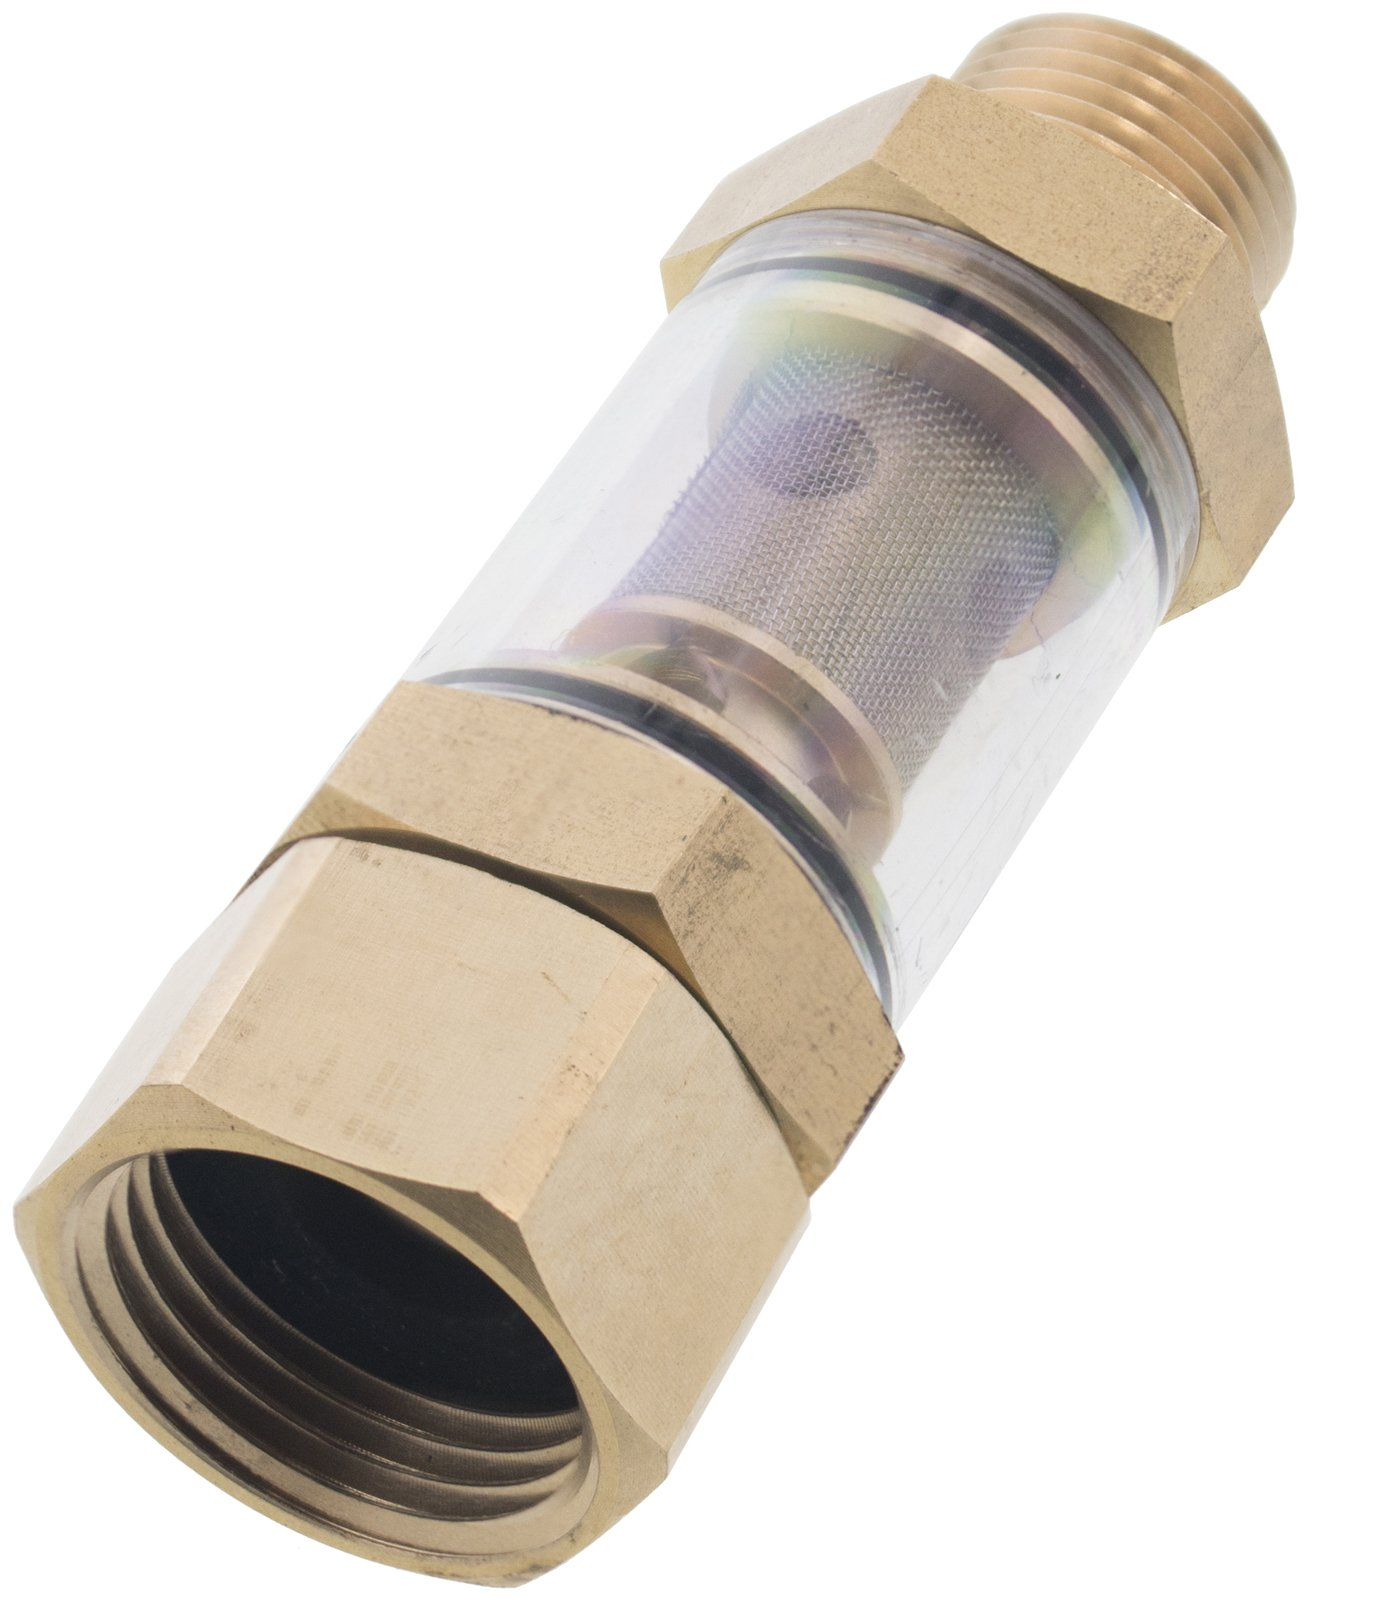 Erie Tools Pressure Washer 1/2'' MNPT x 3/4'' FNPT Inlet Water Sediment Filter by Erie Tools